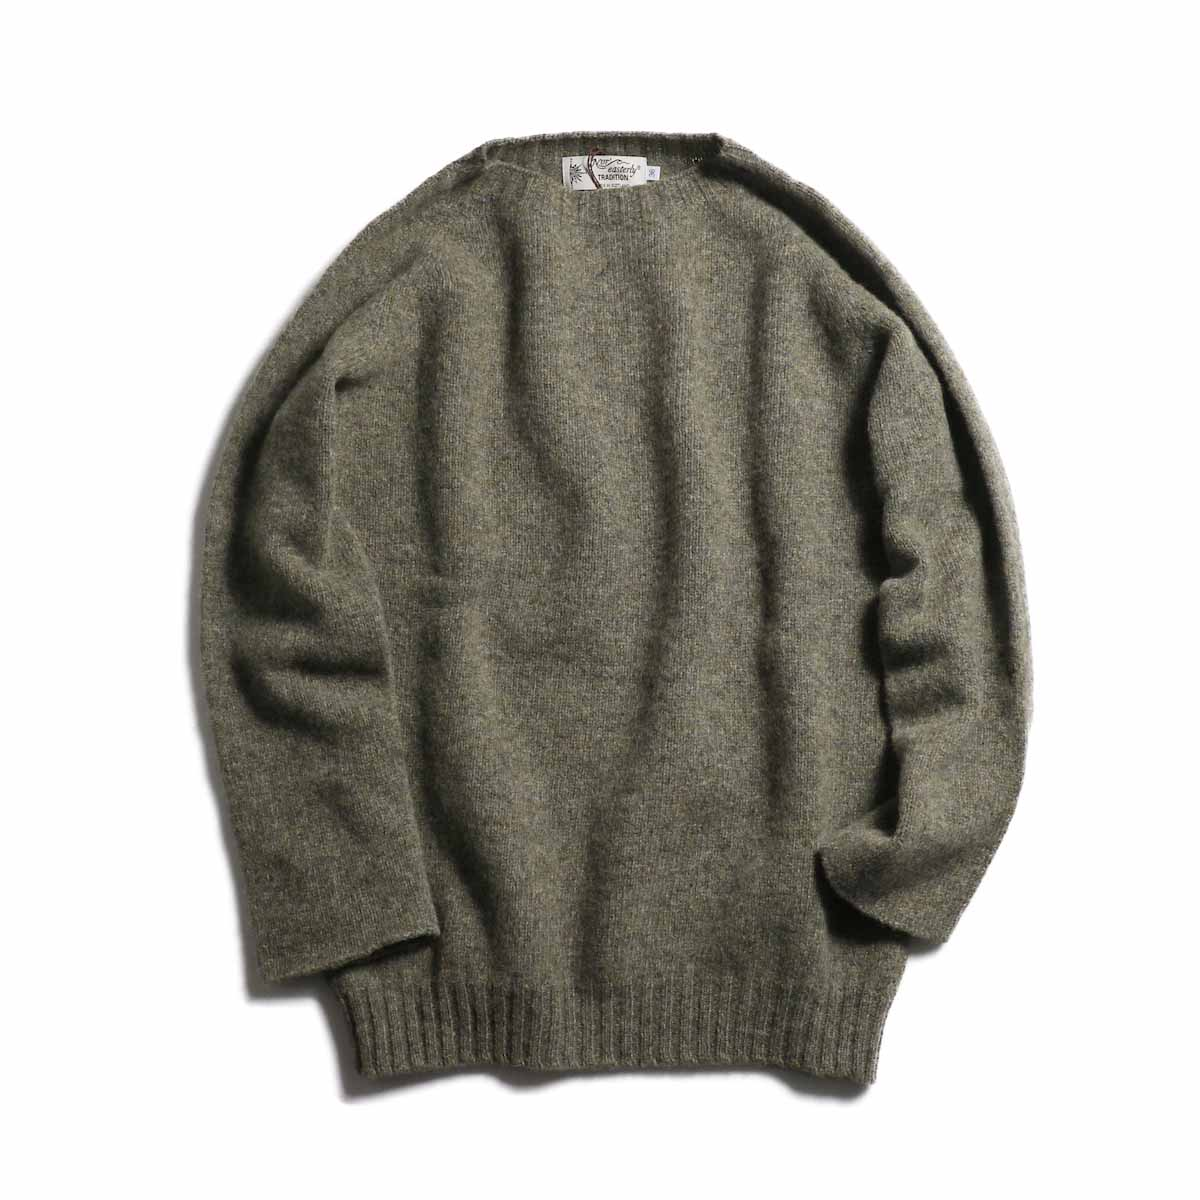 NOR'EASTERLY / L/S Crew Neck Knit -LT BROWN